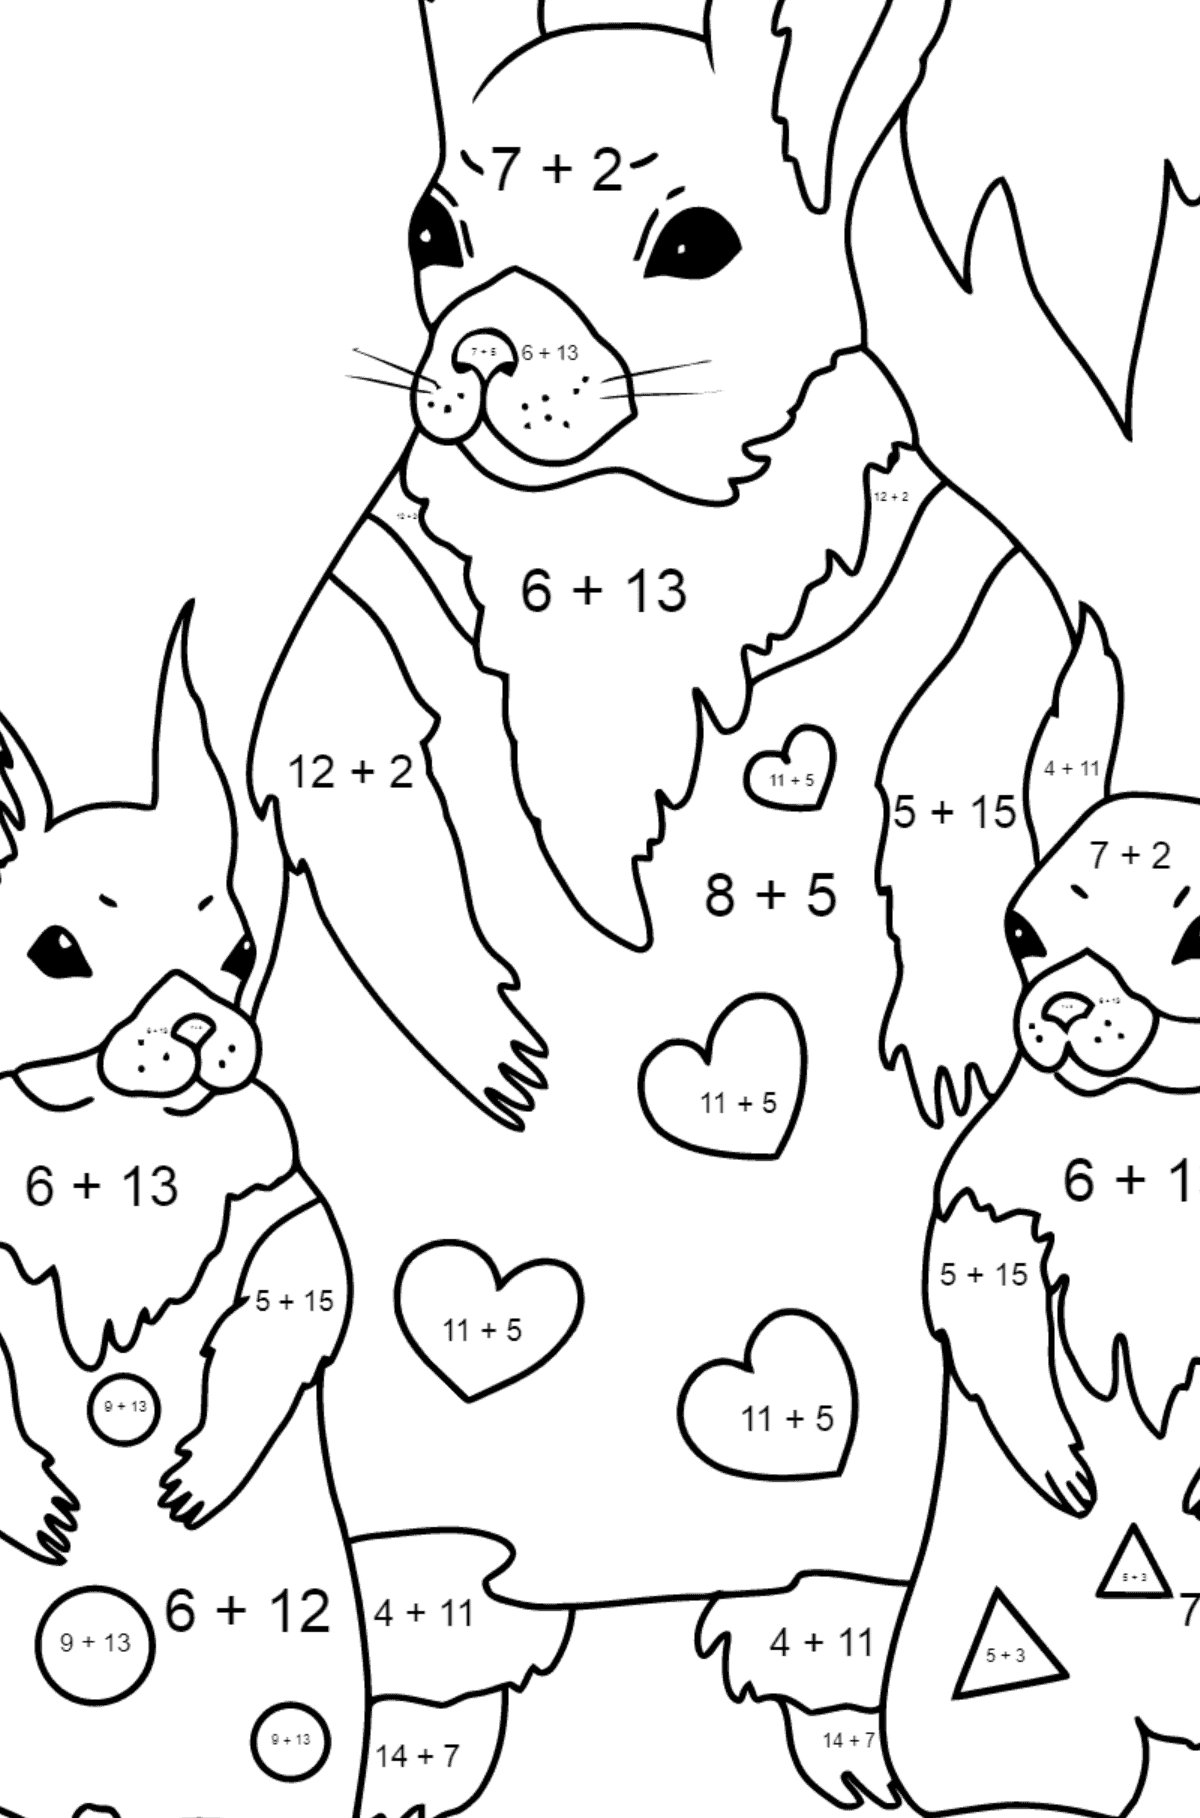 Spring Coloring Page - Squirrels have Dressed Up - Math Coloring - Addition for Children